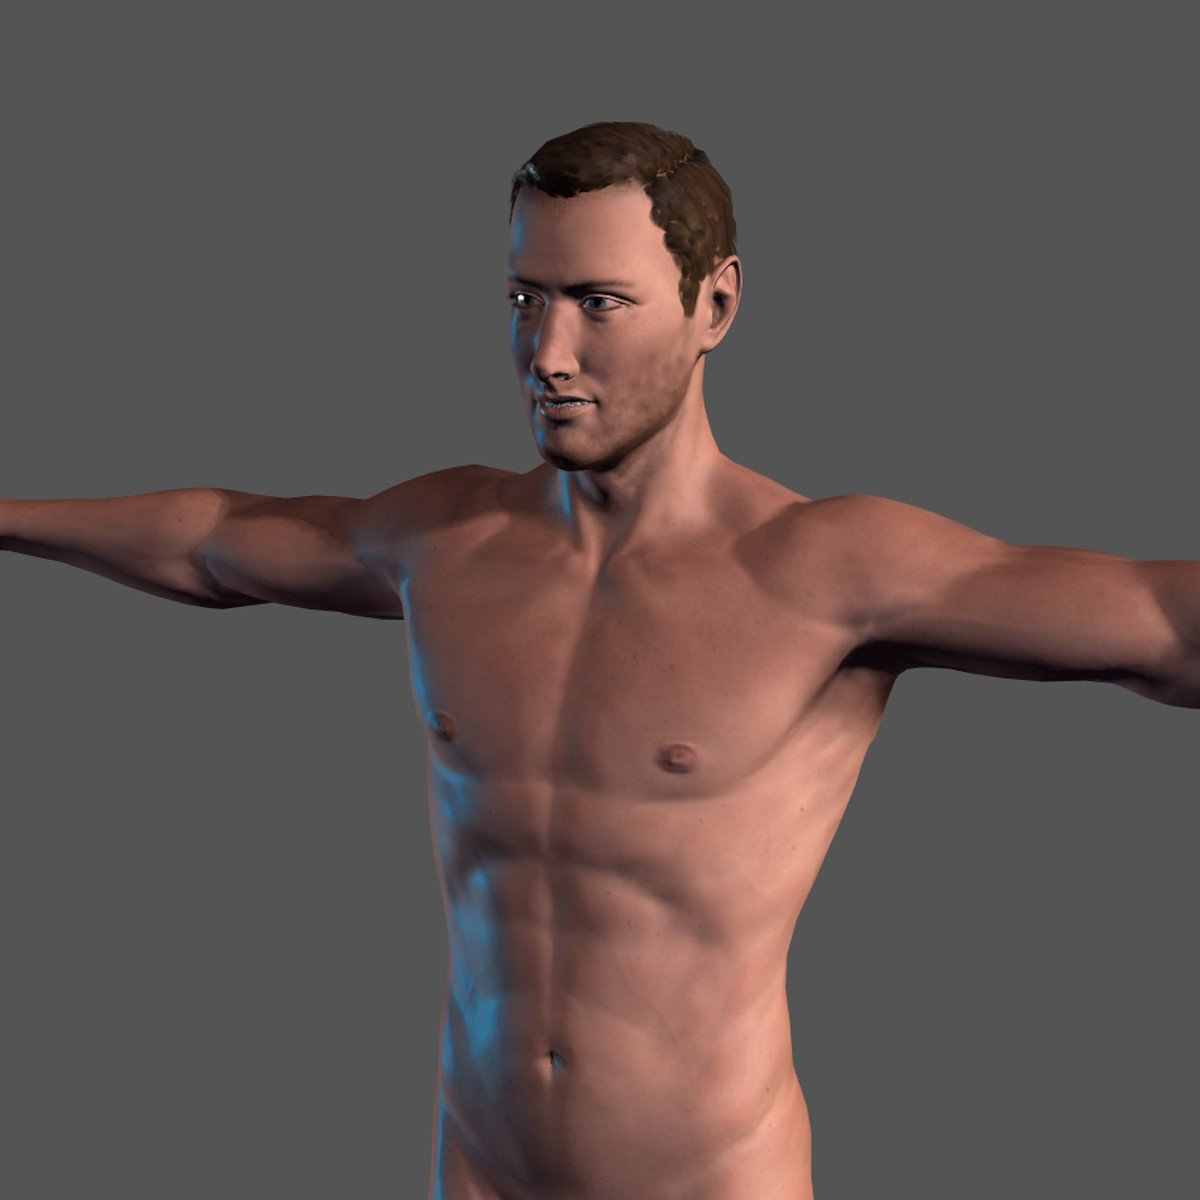 ArtStation - Animated Naked Man-Rigged 3d game character